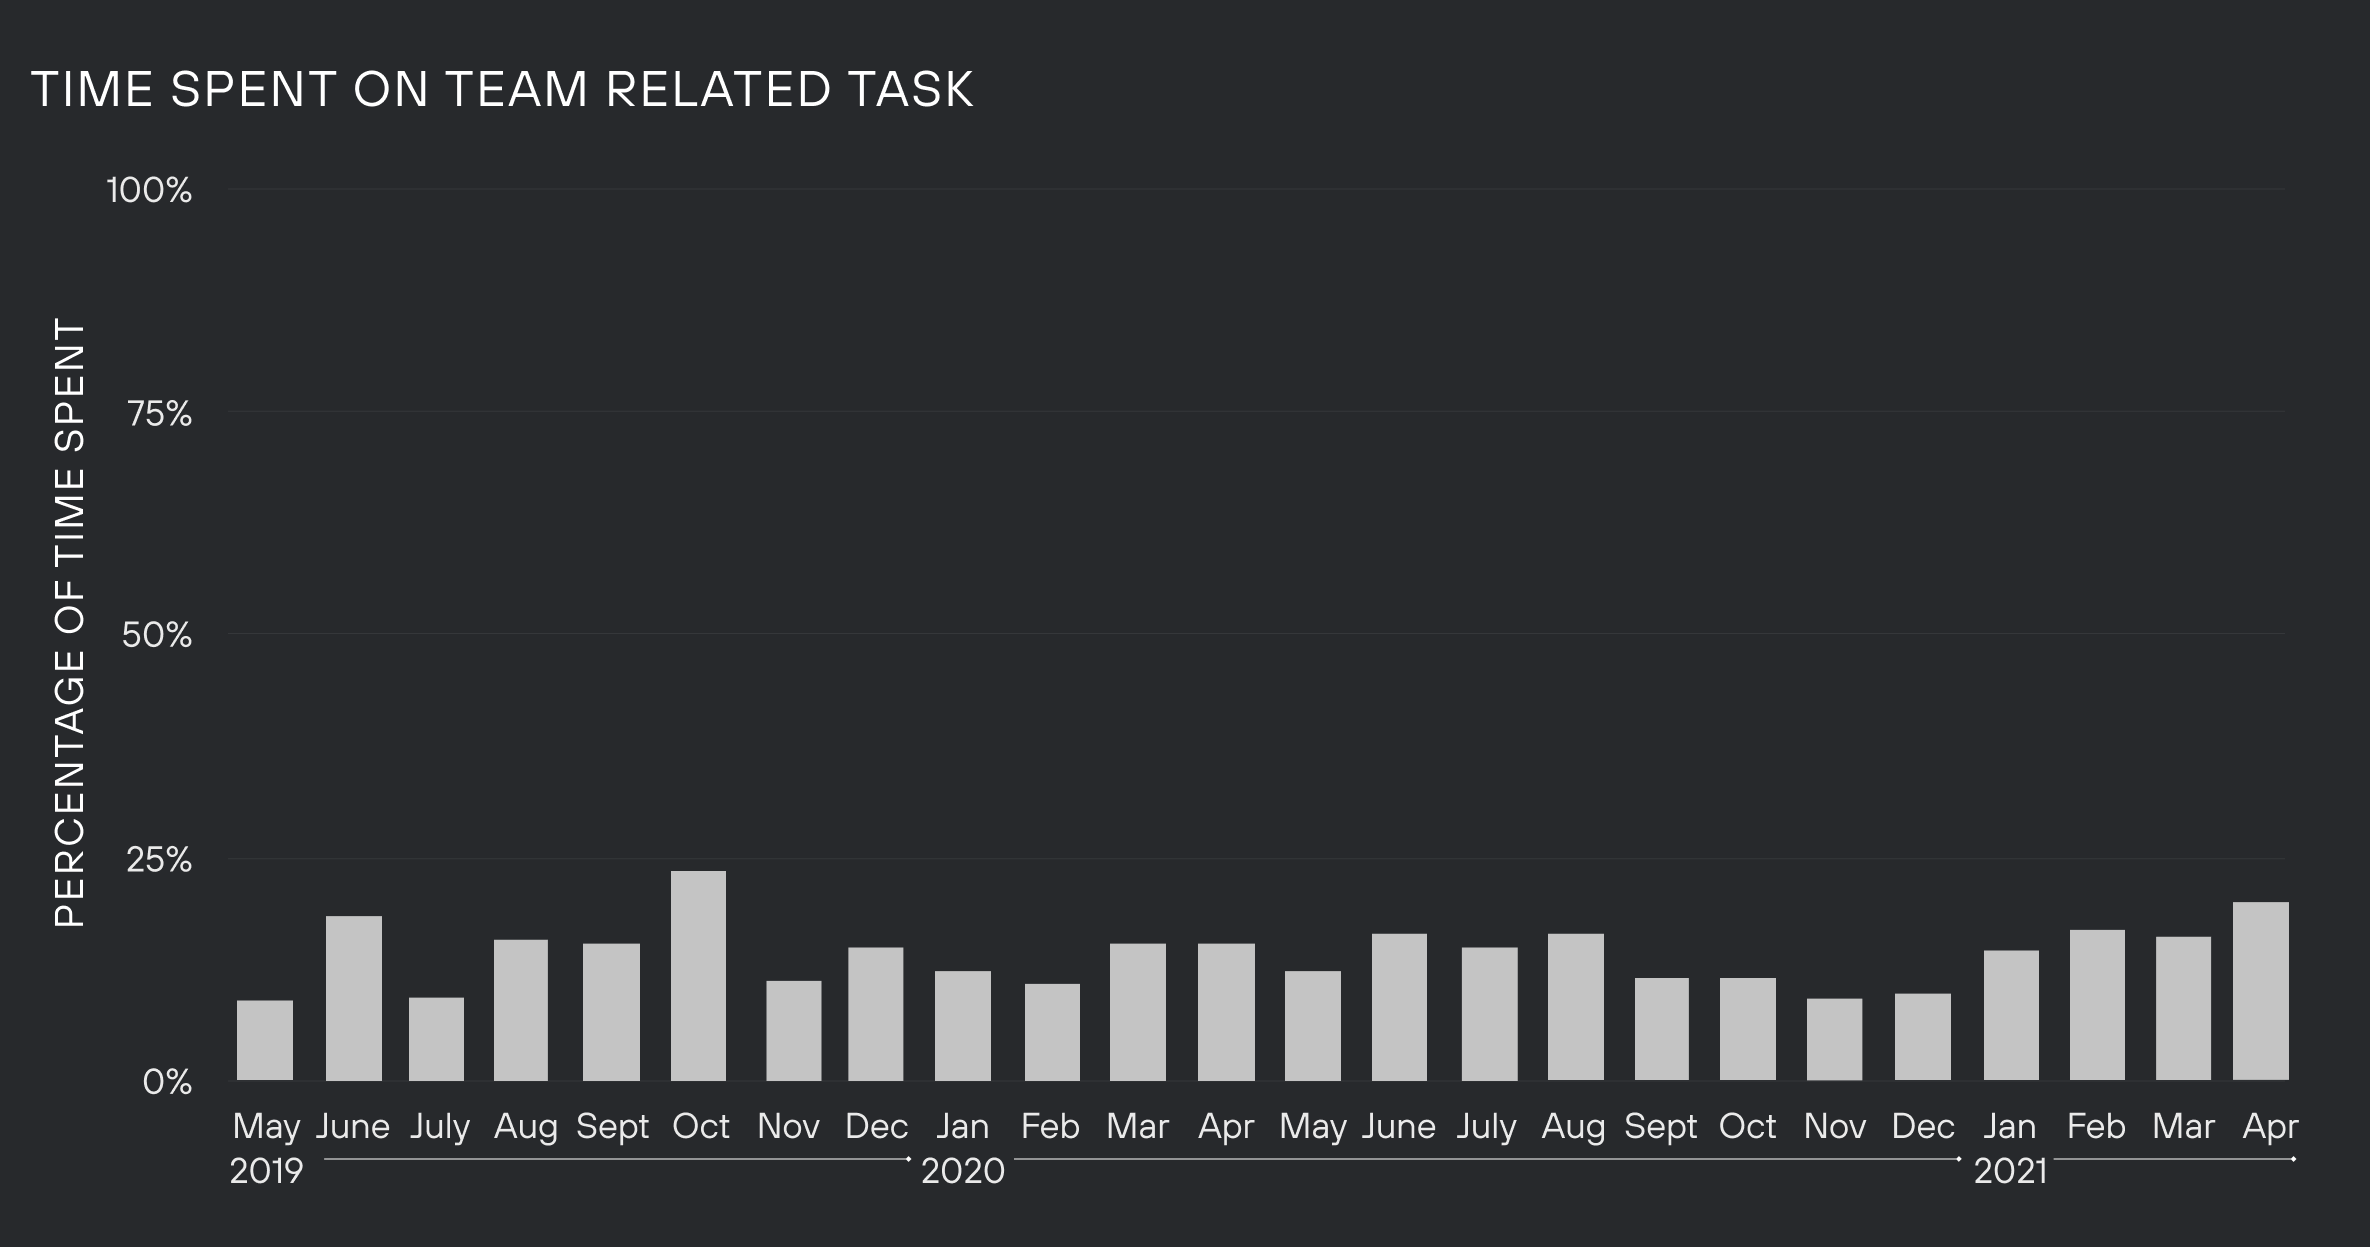 Graph of time spent on team-related tasks